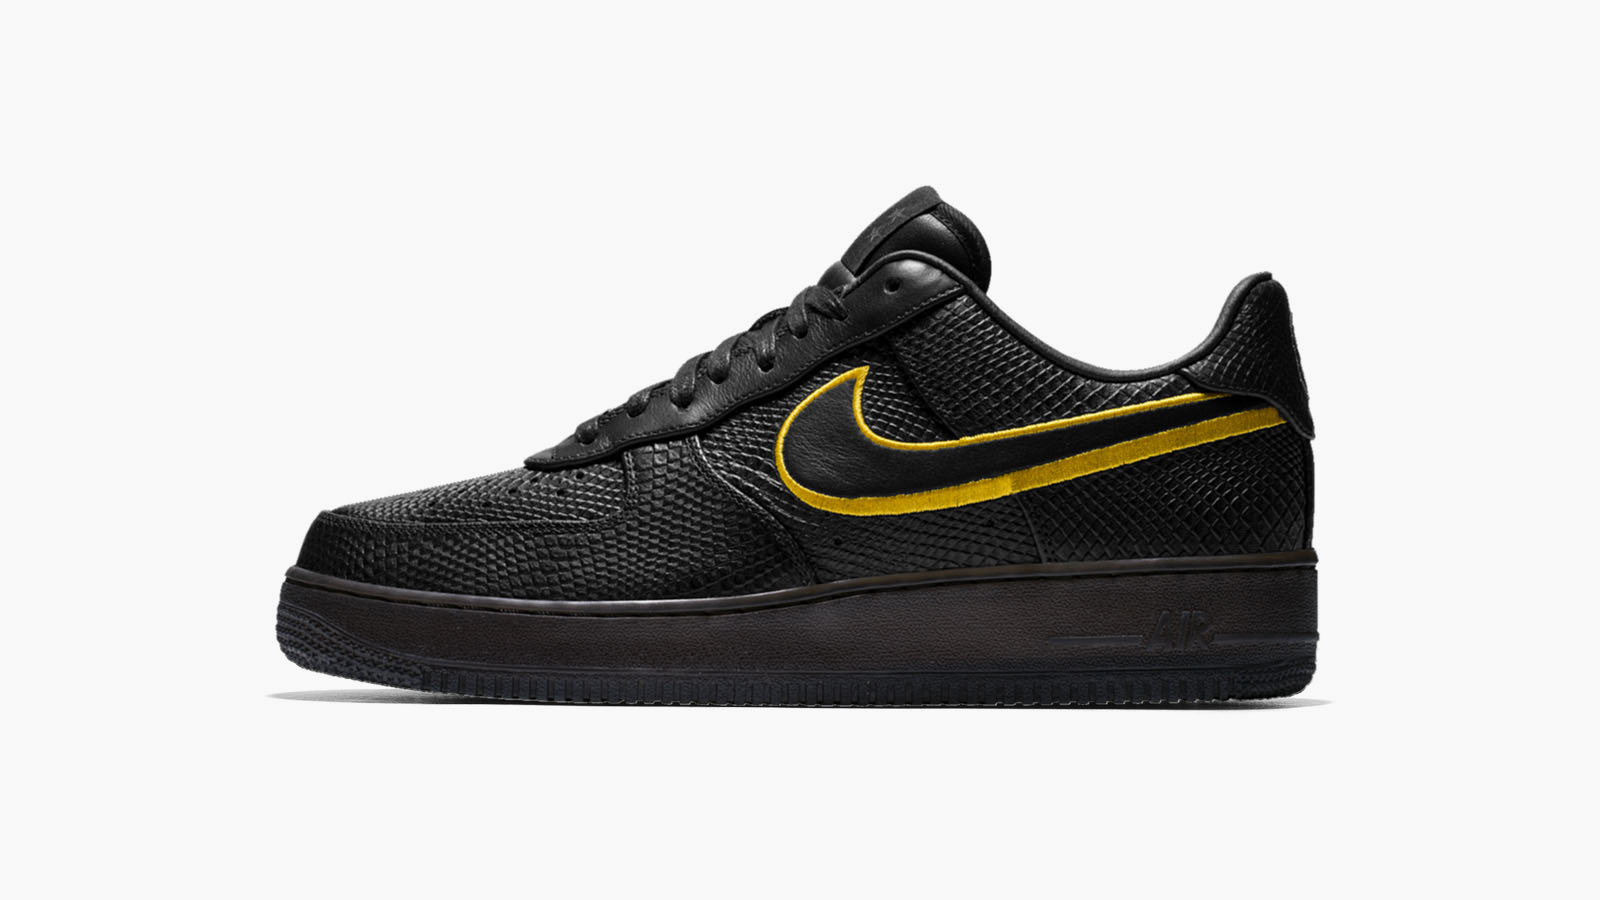 Kobe bryant black mamba air force 1 3